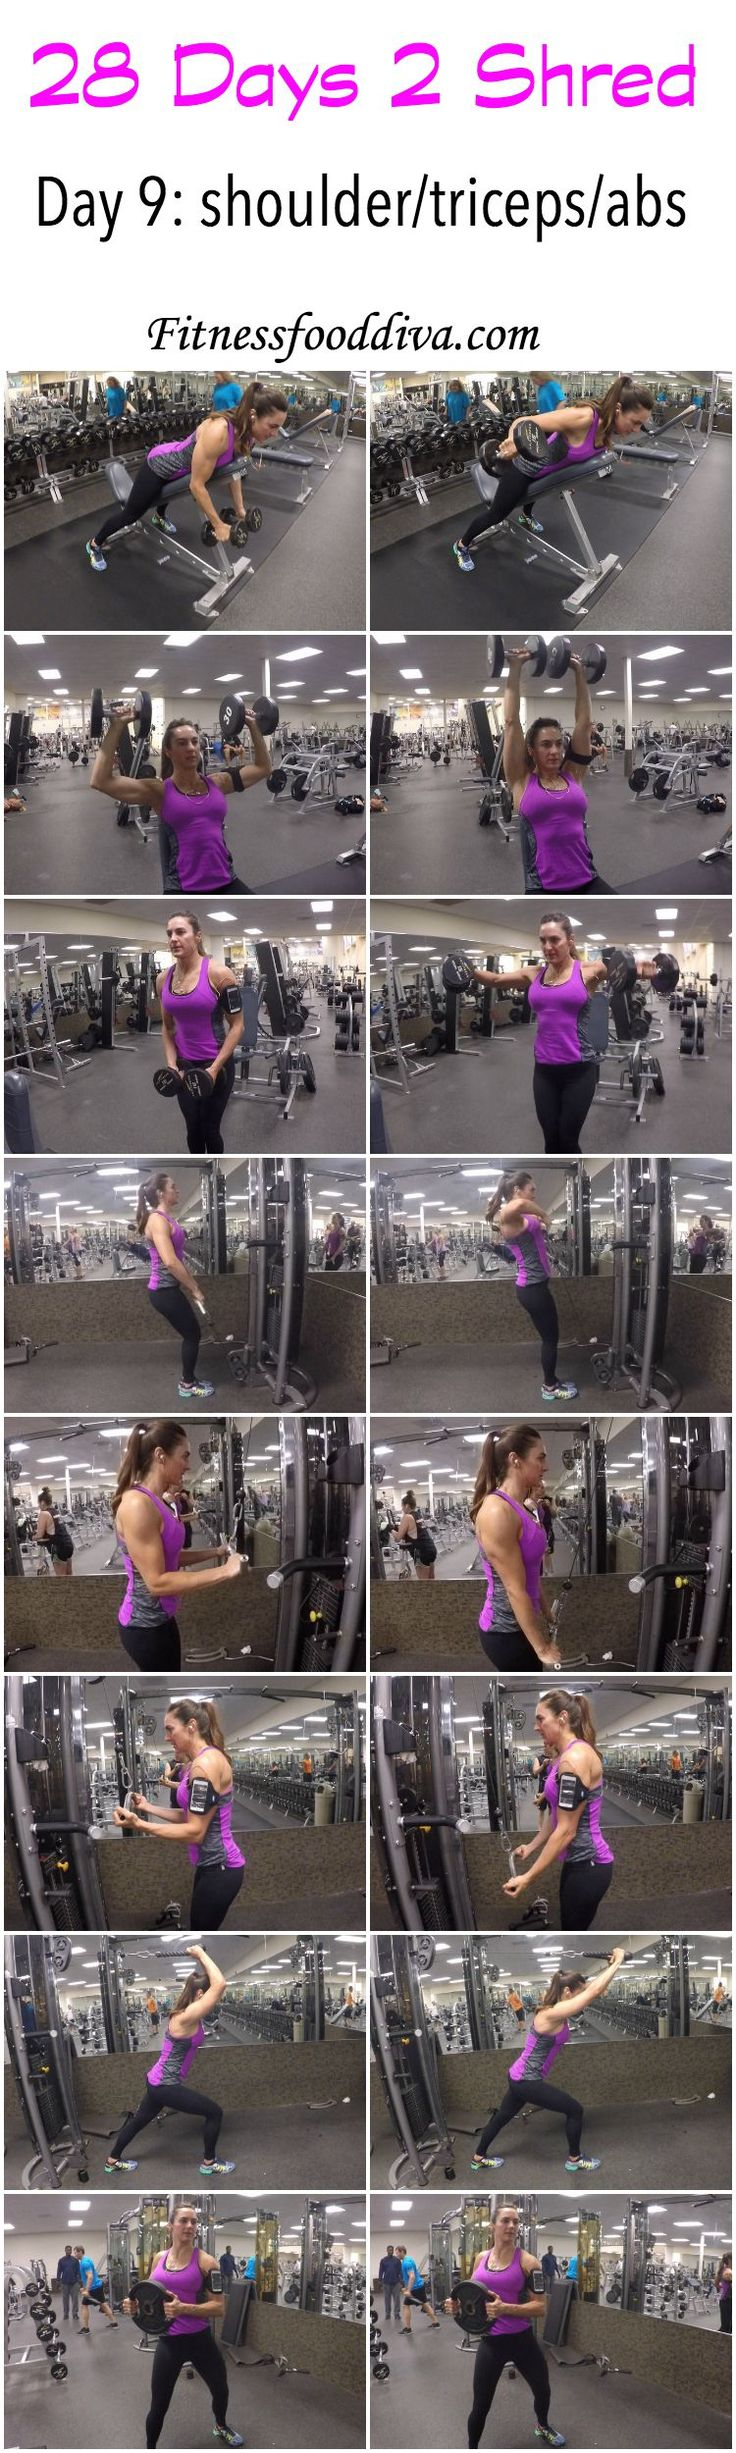 Day 9: Shoulders/triceps/Abs workout/video